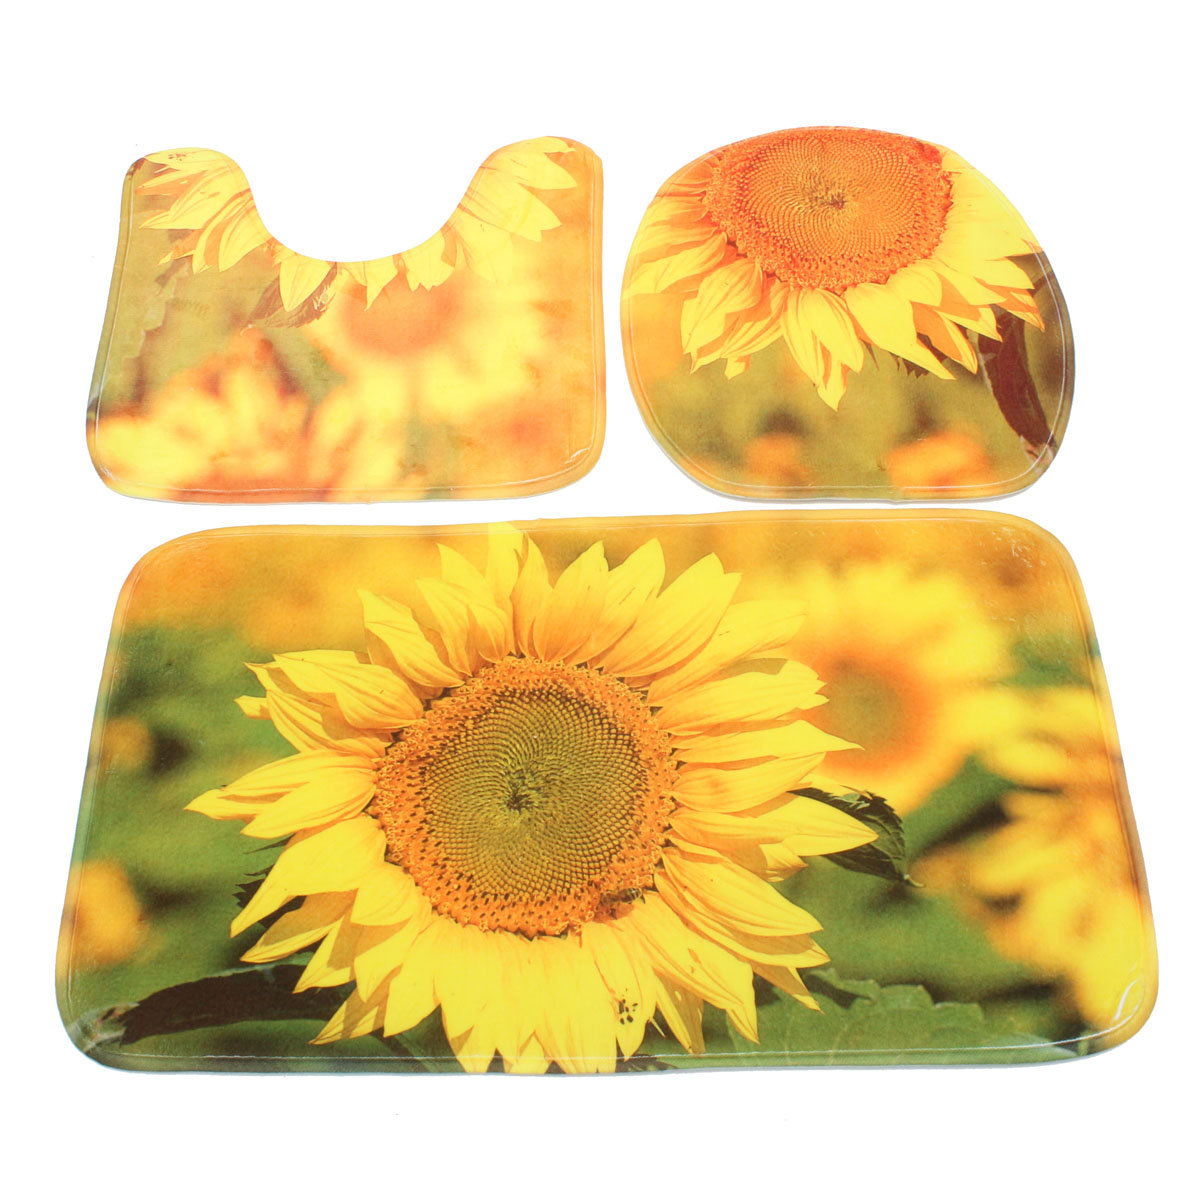 Sunflowers Pattern Bathroom Carpet Pedestal Lid Mat Toilet Cover Rug Set 3Pcs